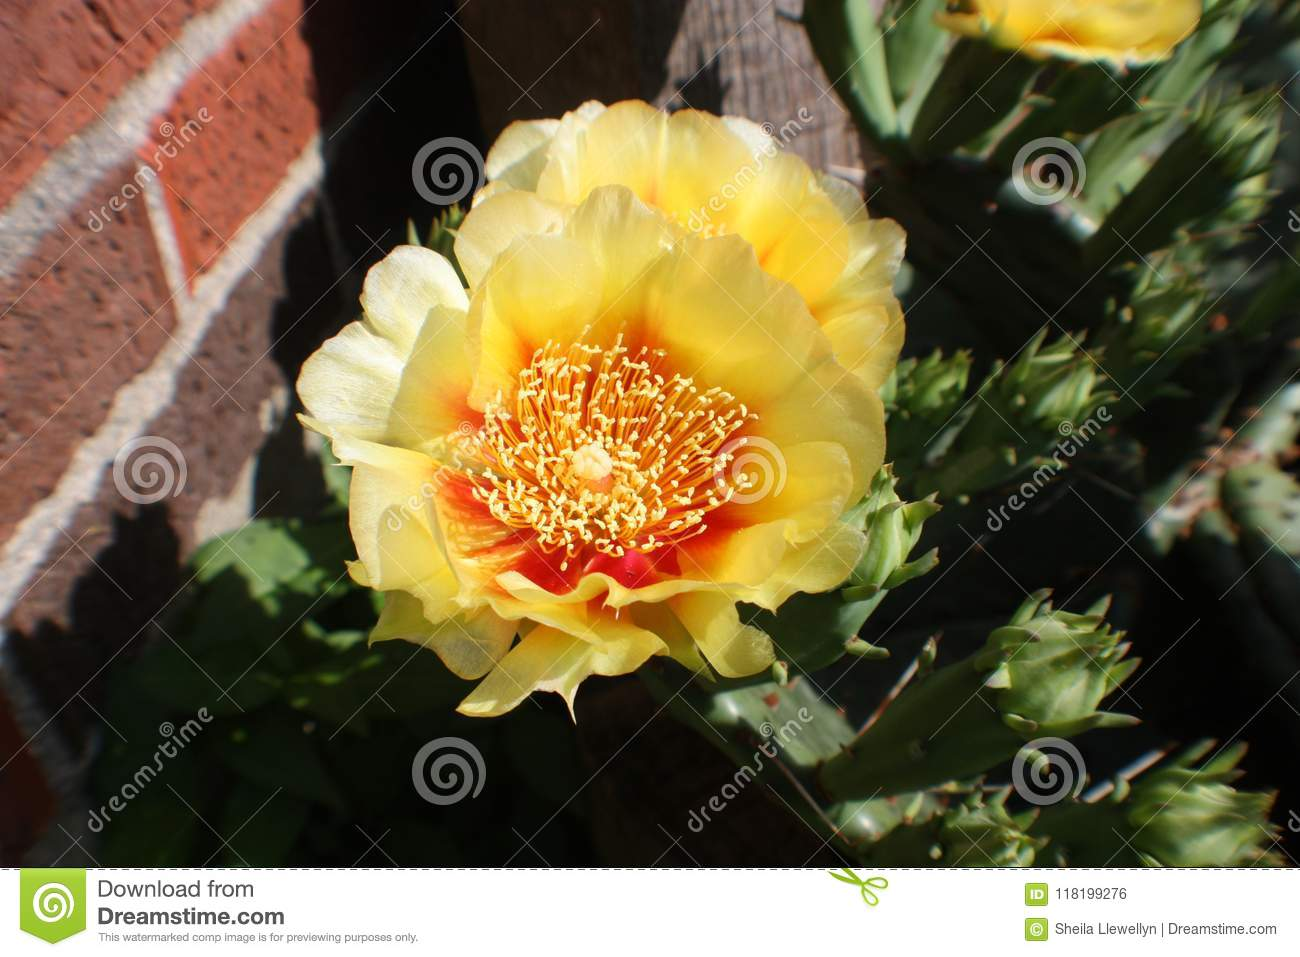 Macro Of A Bright Yellow Cactus Bloom With A Deep Orange Center